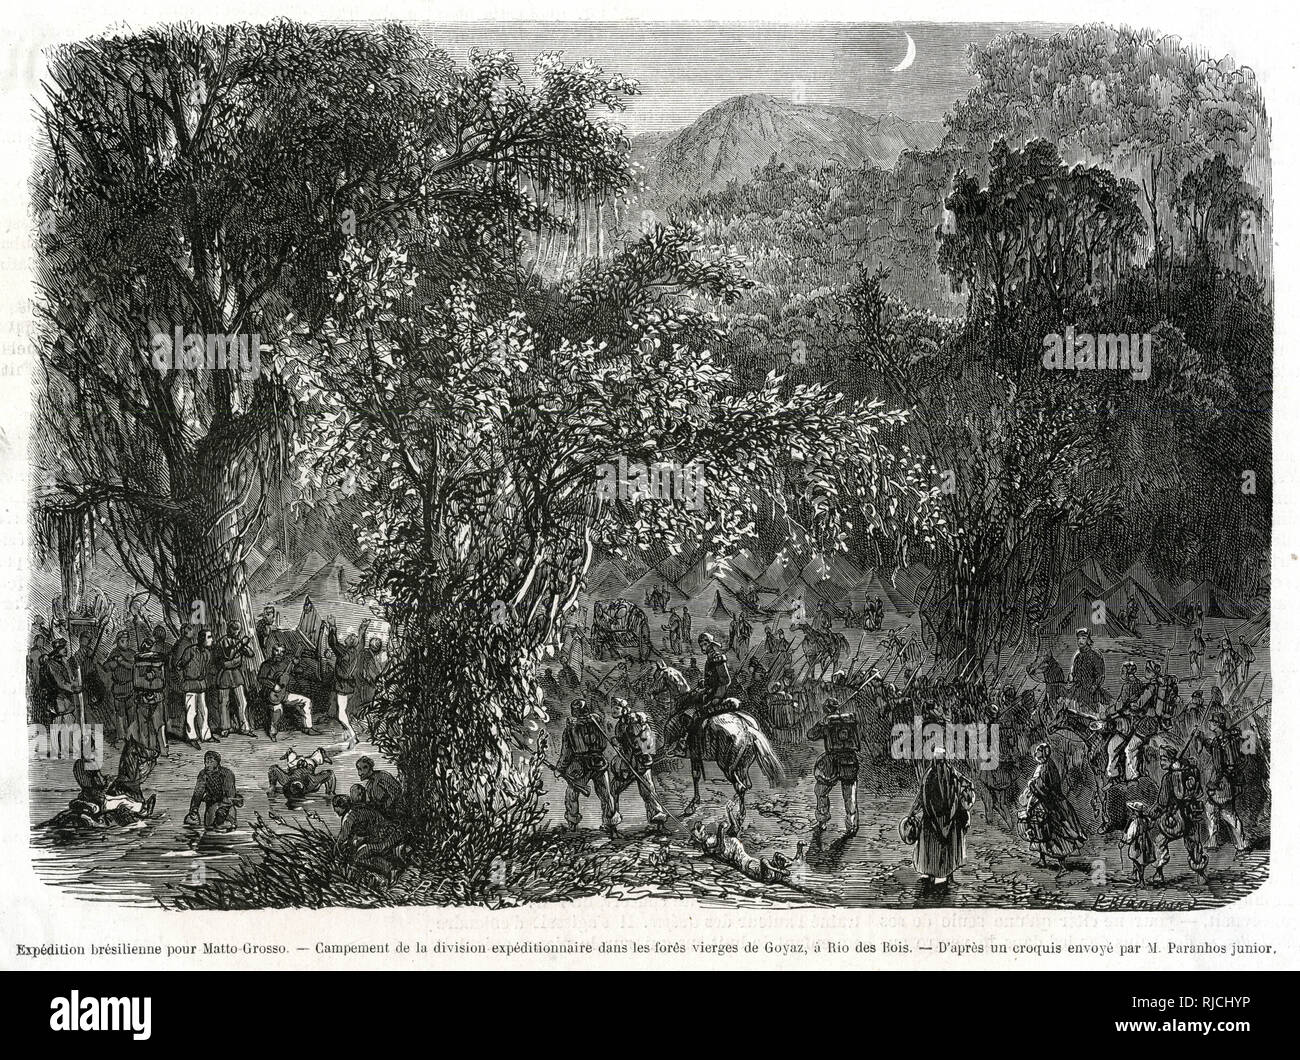 A Brazilian expedition encampment in the forests of Goias, at Rio Verde. An army camp is set up in the distance as a column of soldiers marches into it. Stock Photo